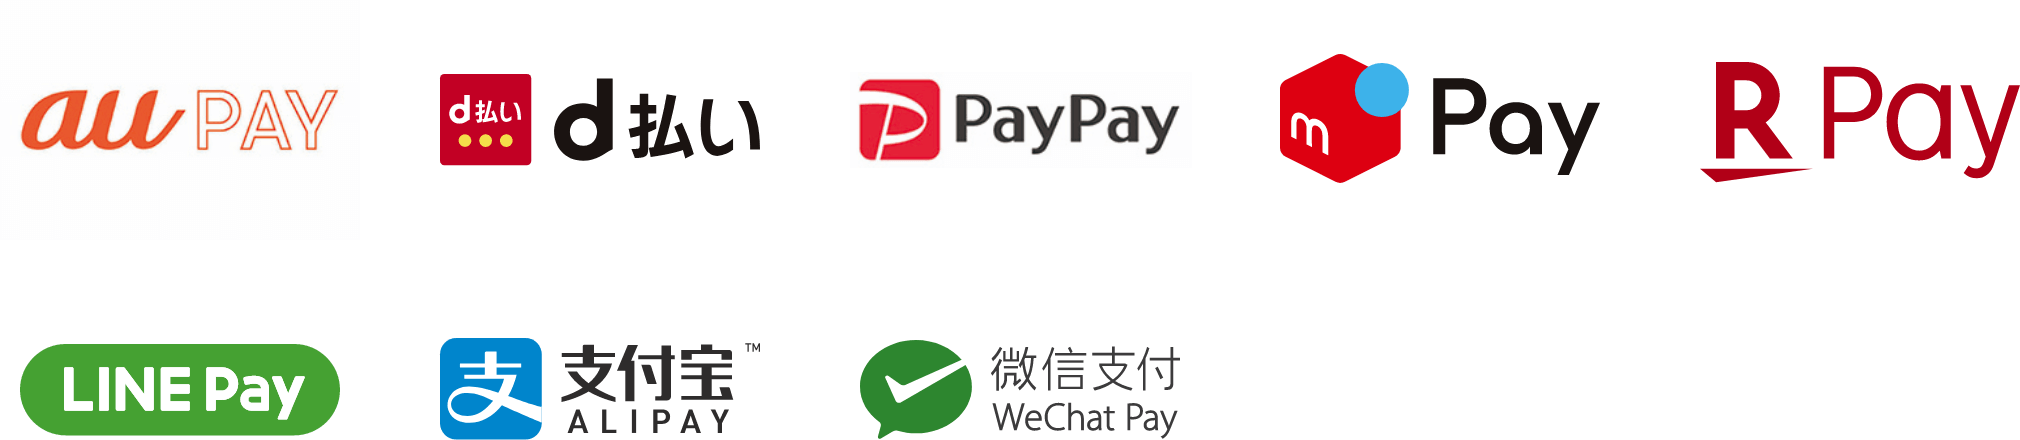 au PAY,d払い,PayPay,メルペイ,R Pay,LINE Pay,ALIPAY,WeChat Pay